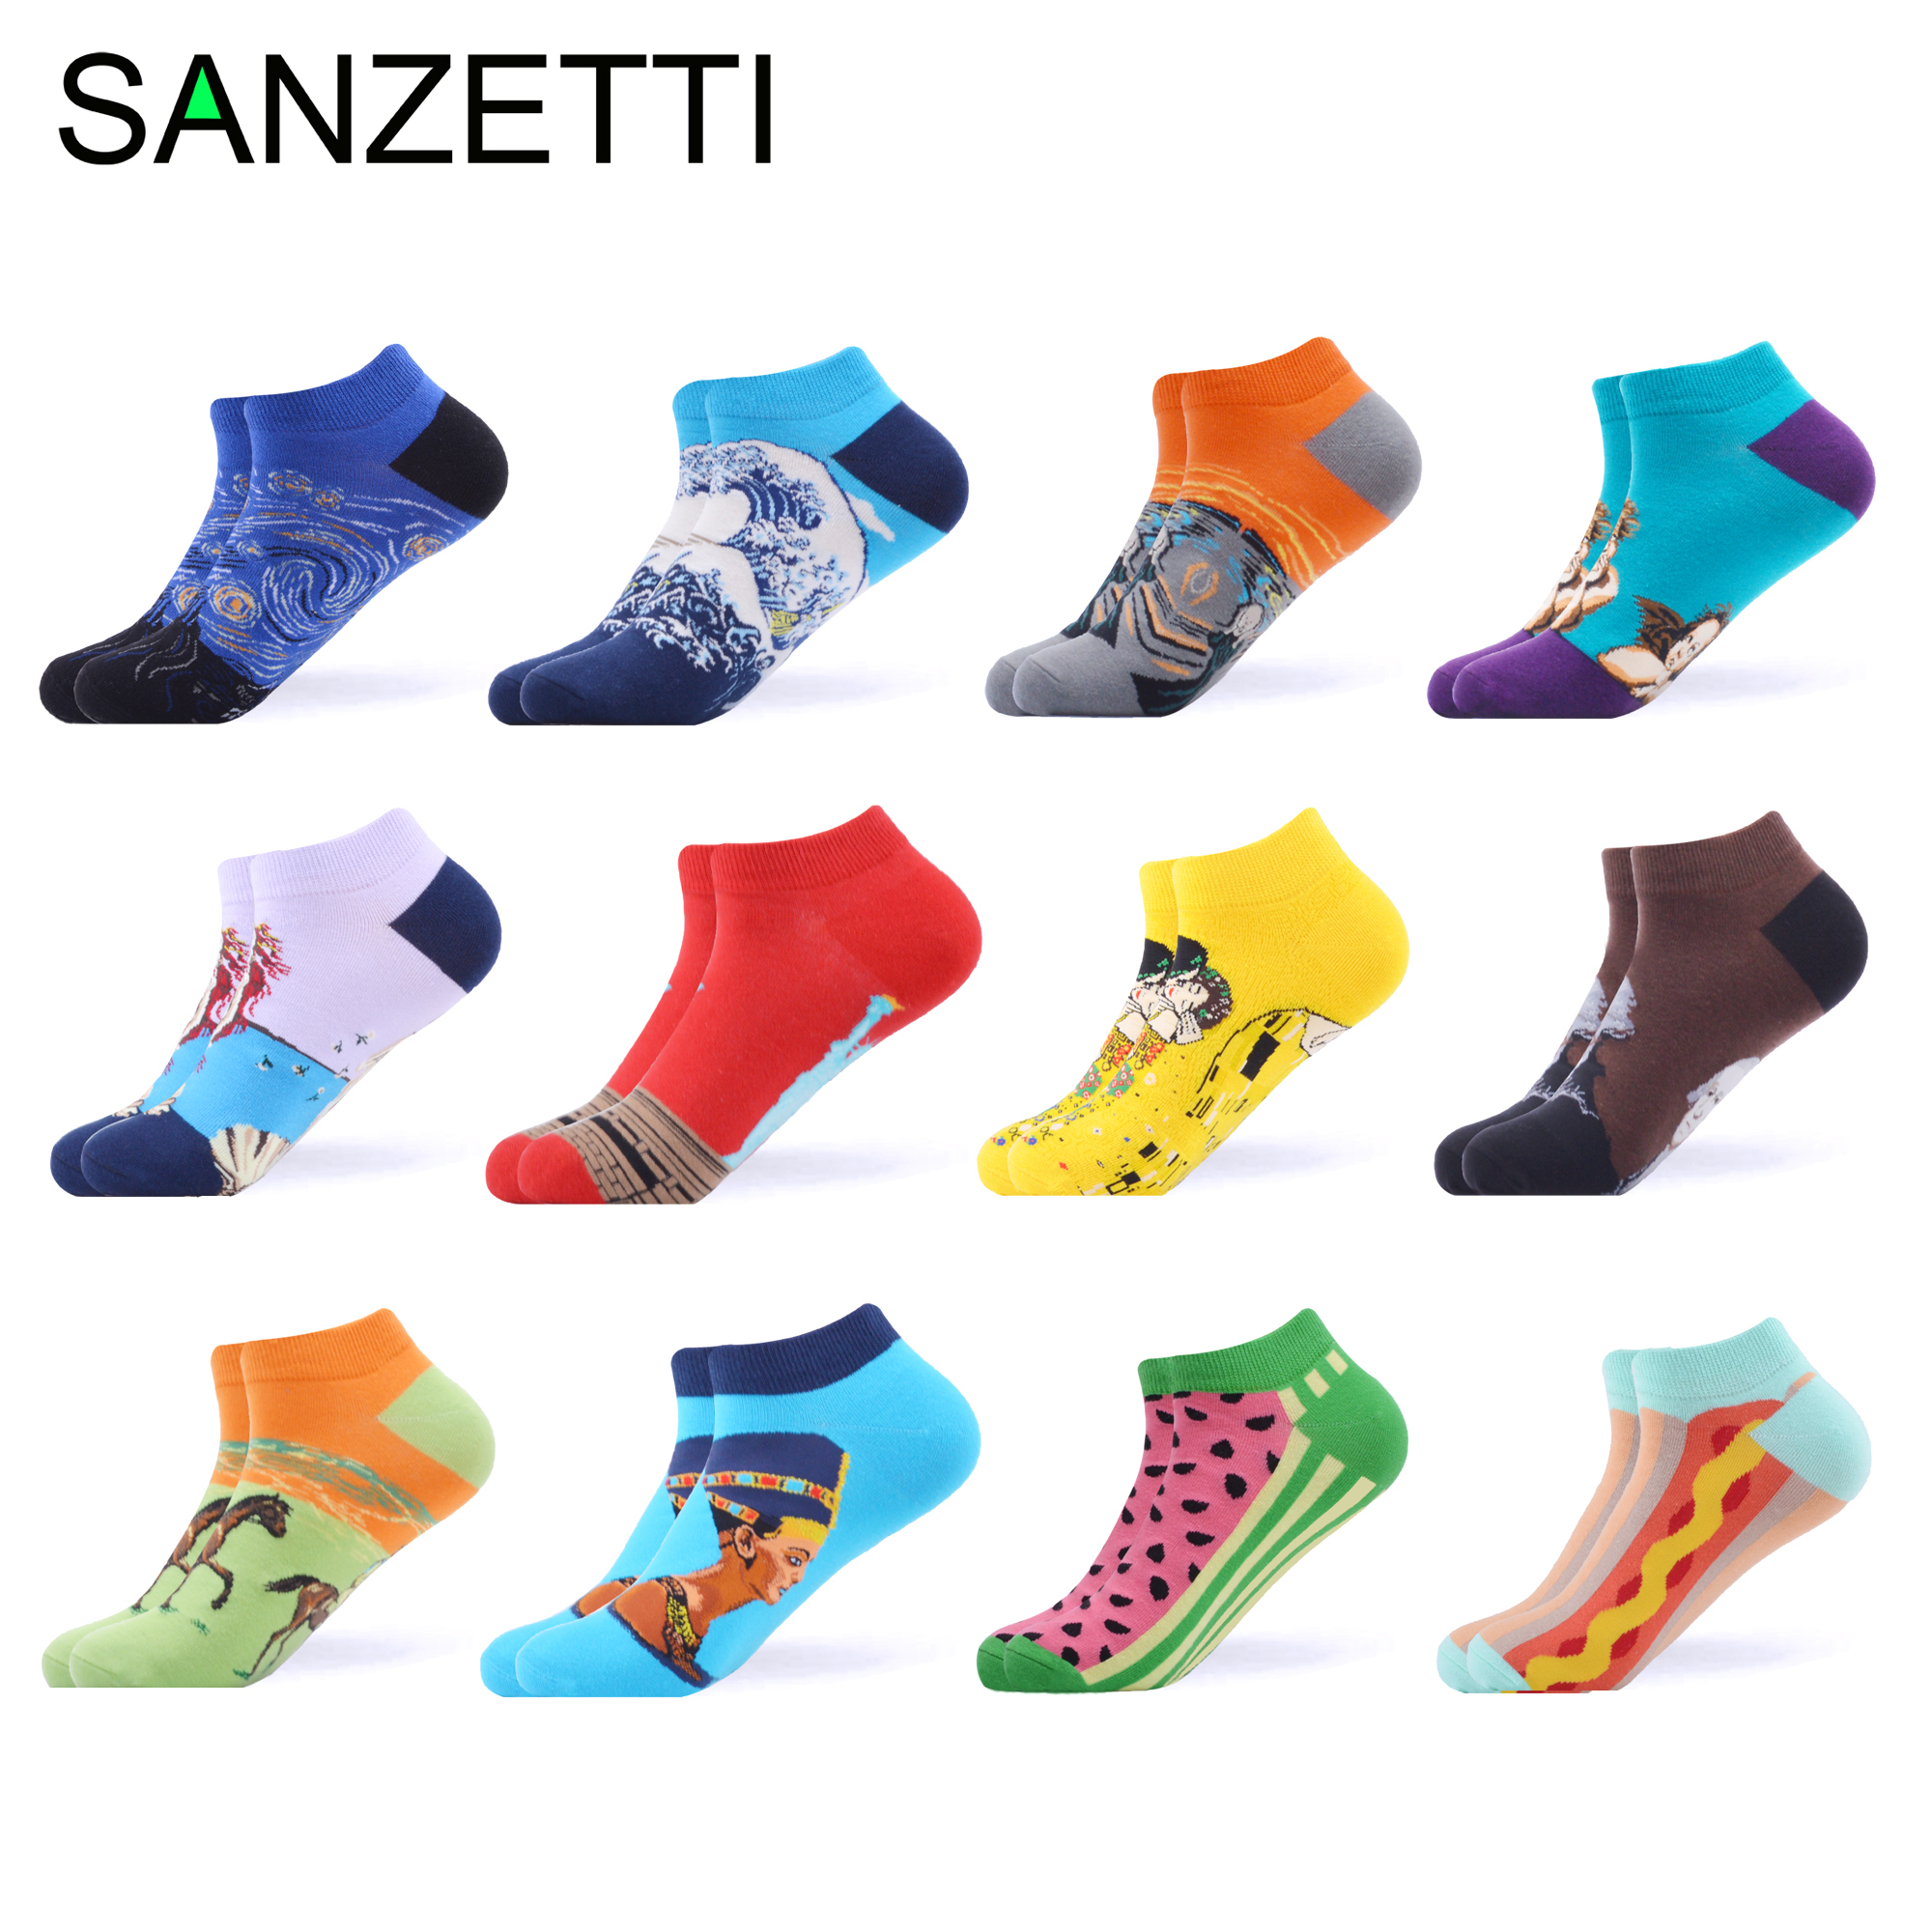 SANZETTI Men's Casual Summer Ankle   Socks   Colorful Happy Funny Combed Cotton Short   Socks   Painting Animal Oils Patten Fruit   Socks